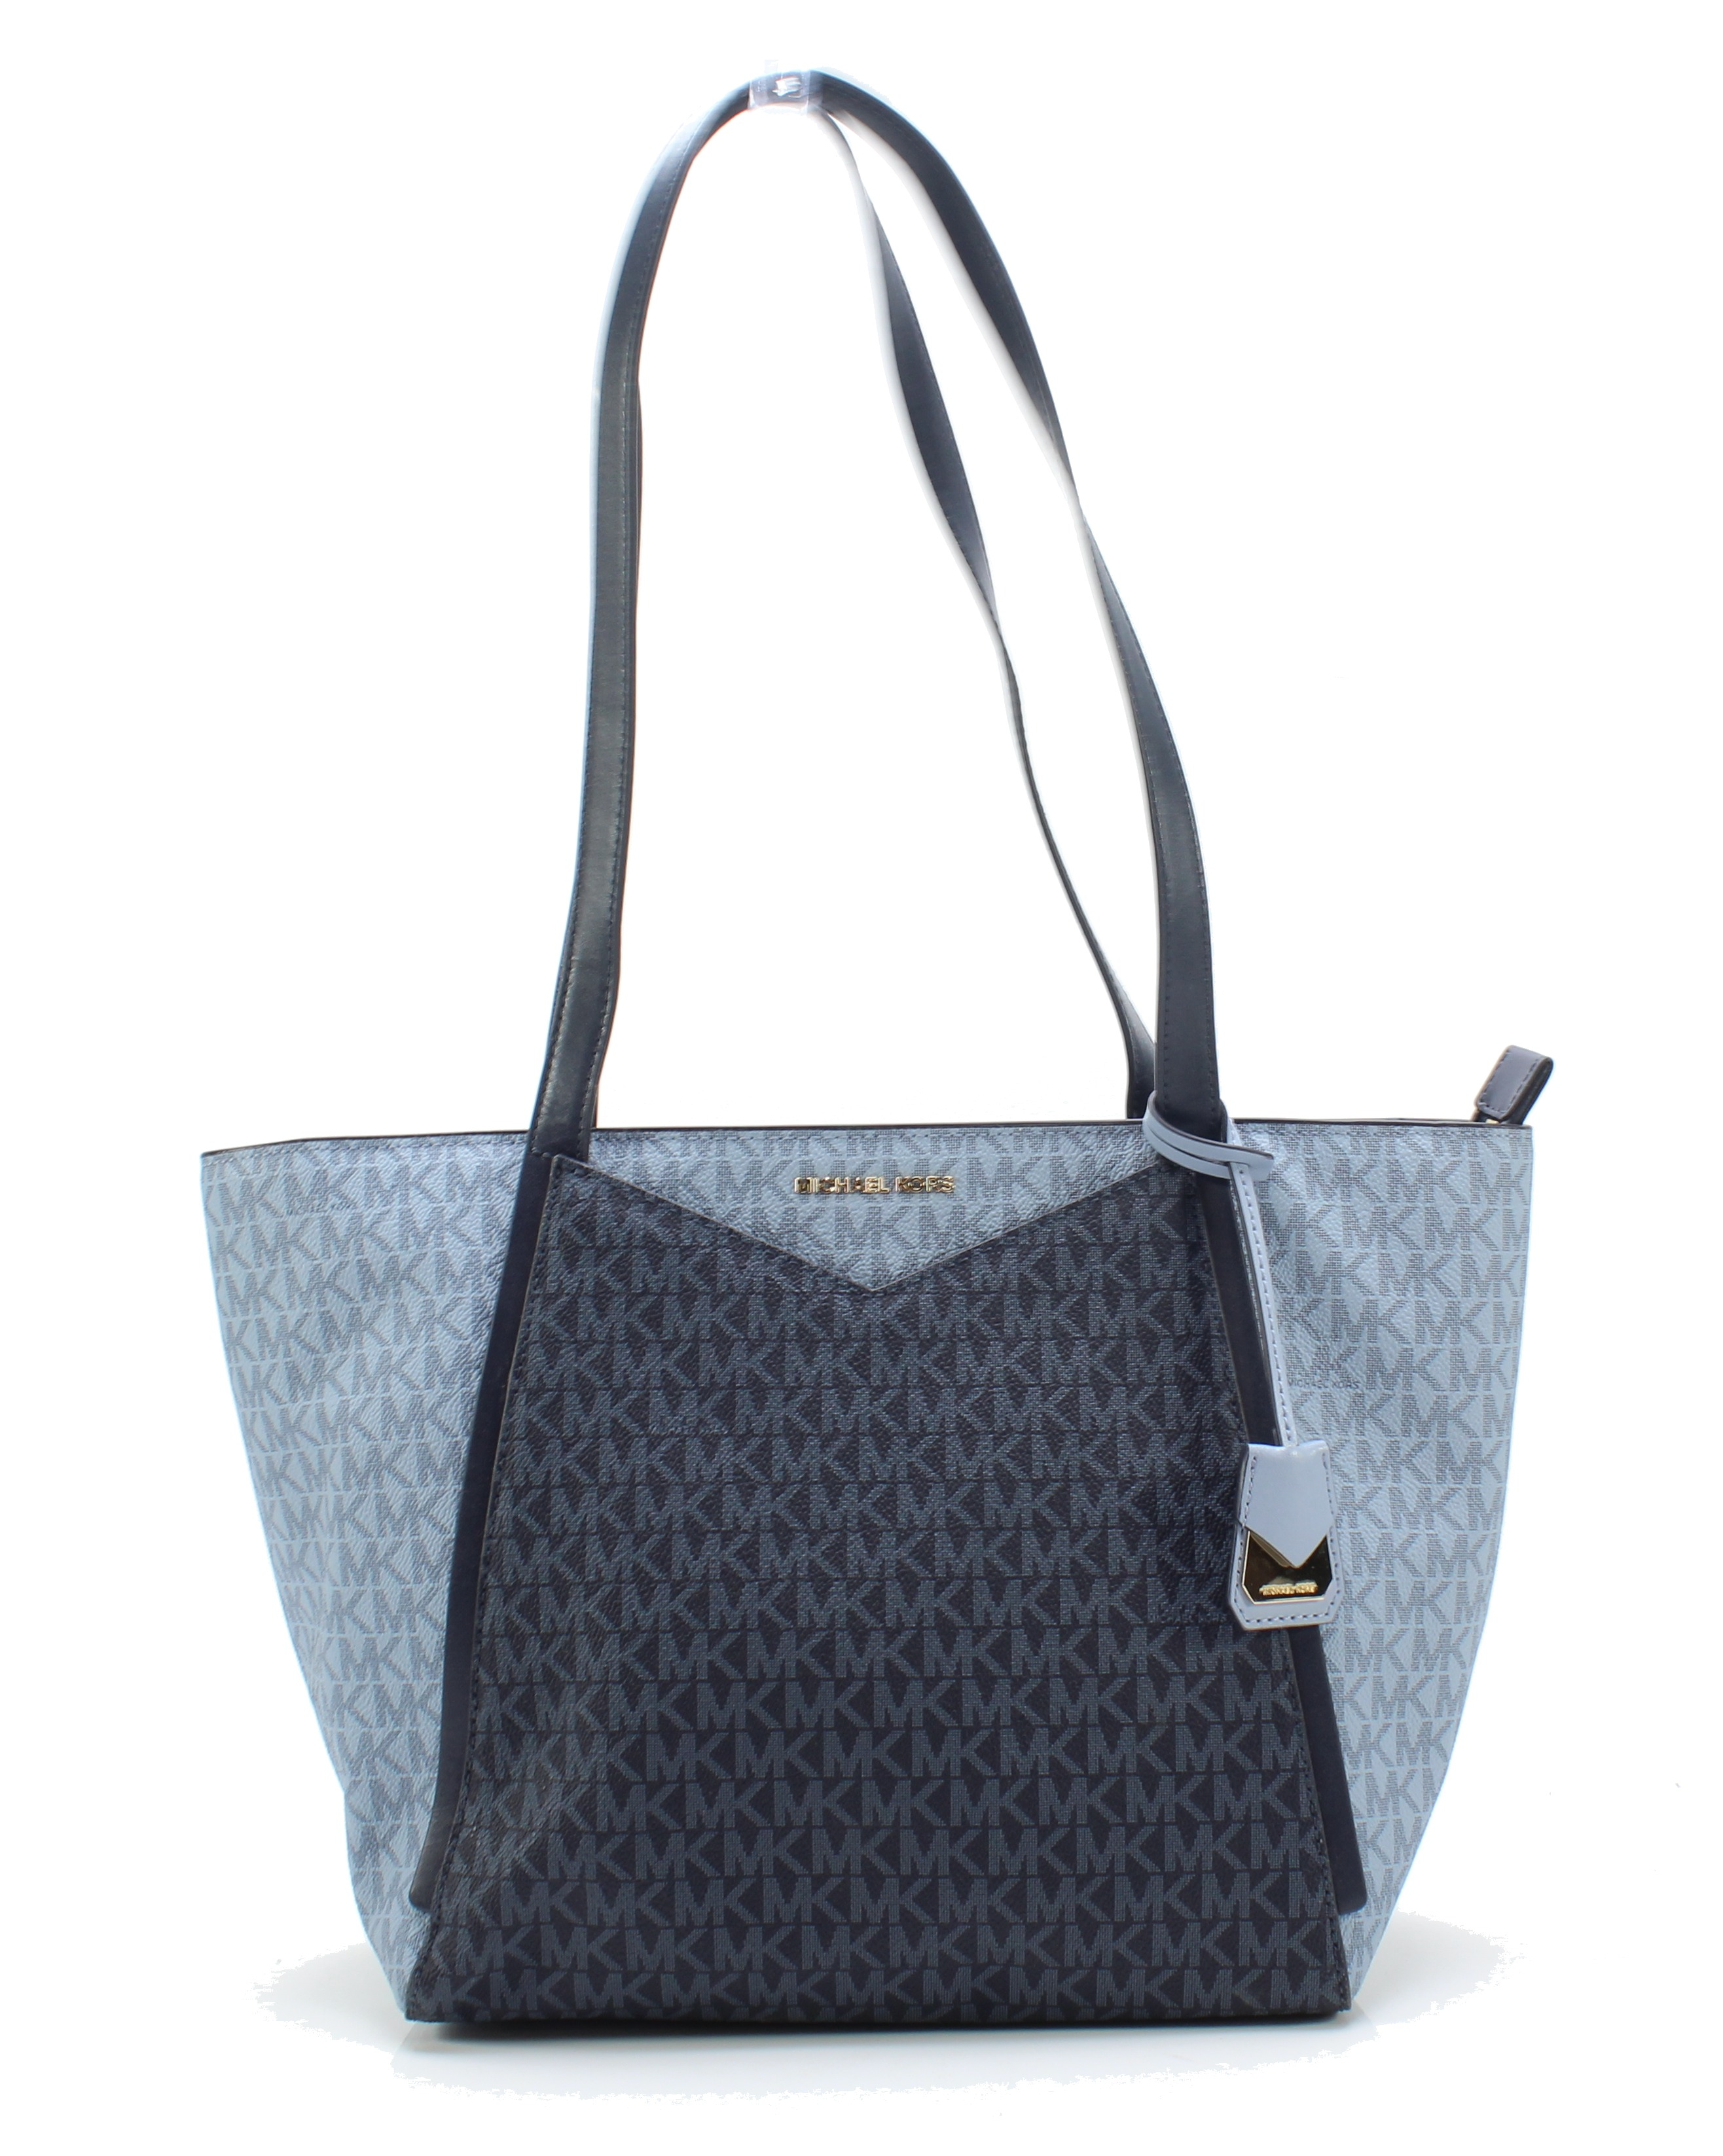 9d0b81827067 Details about Michael Kors NEW Blue Gold Signature Whitney Small Top-Zip  Tote $228- #023